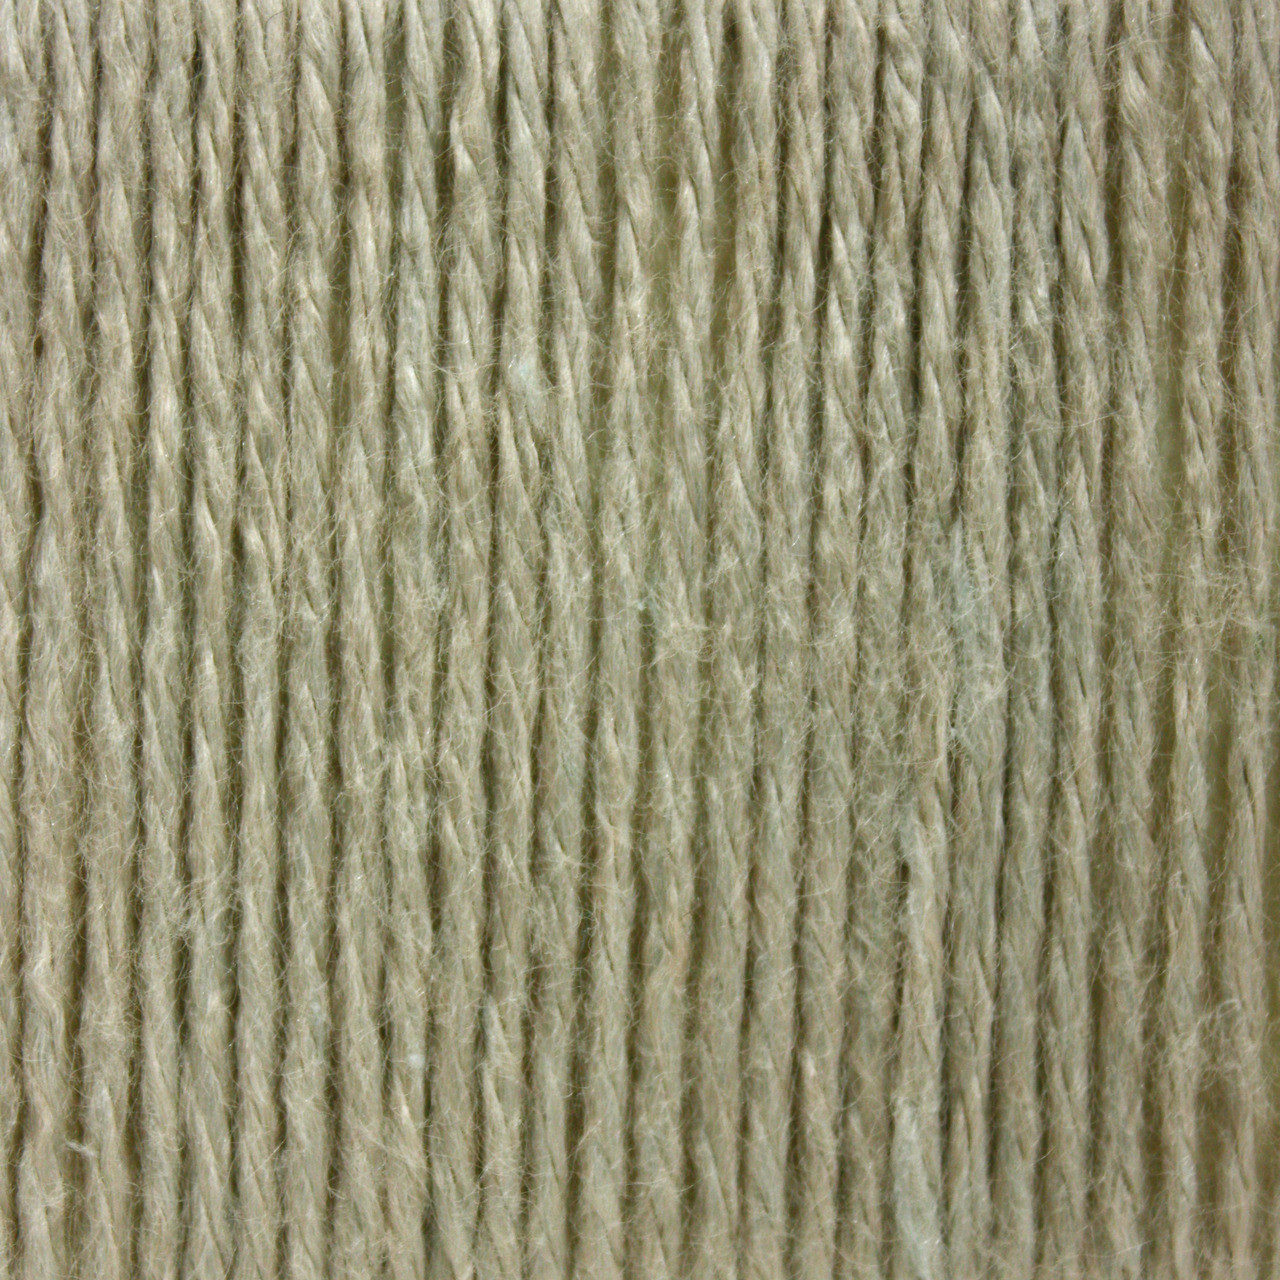 Bamboo Canada Patons Almond Silk Bamboo Yarn 3 Light Free Shipping At Yarn